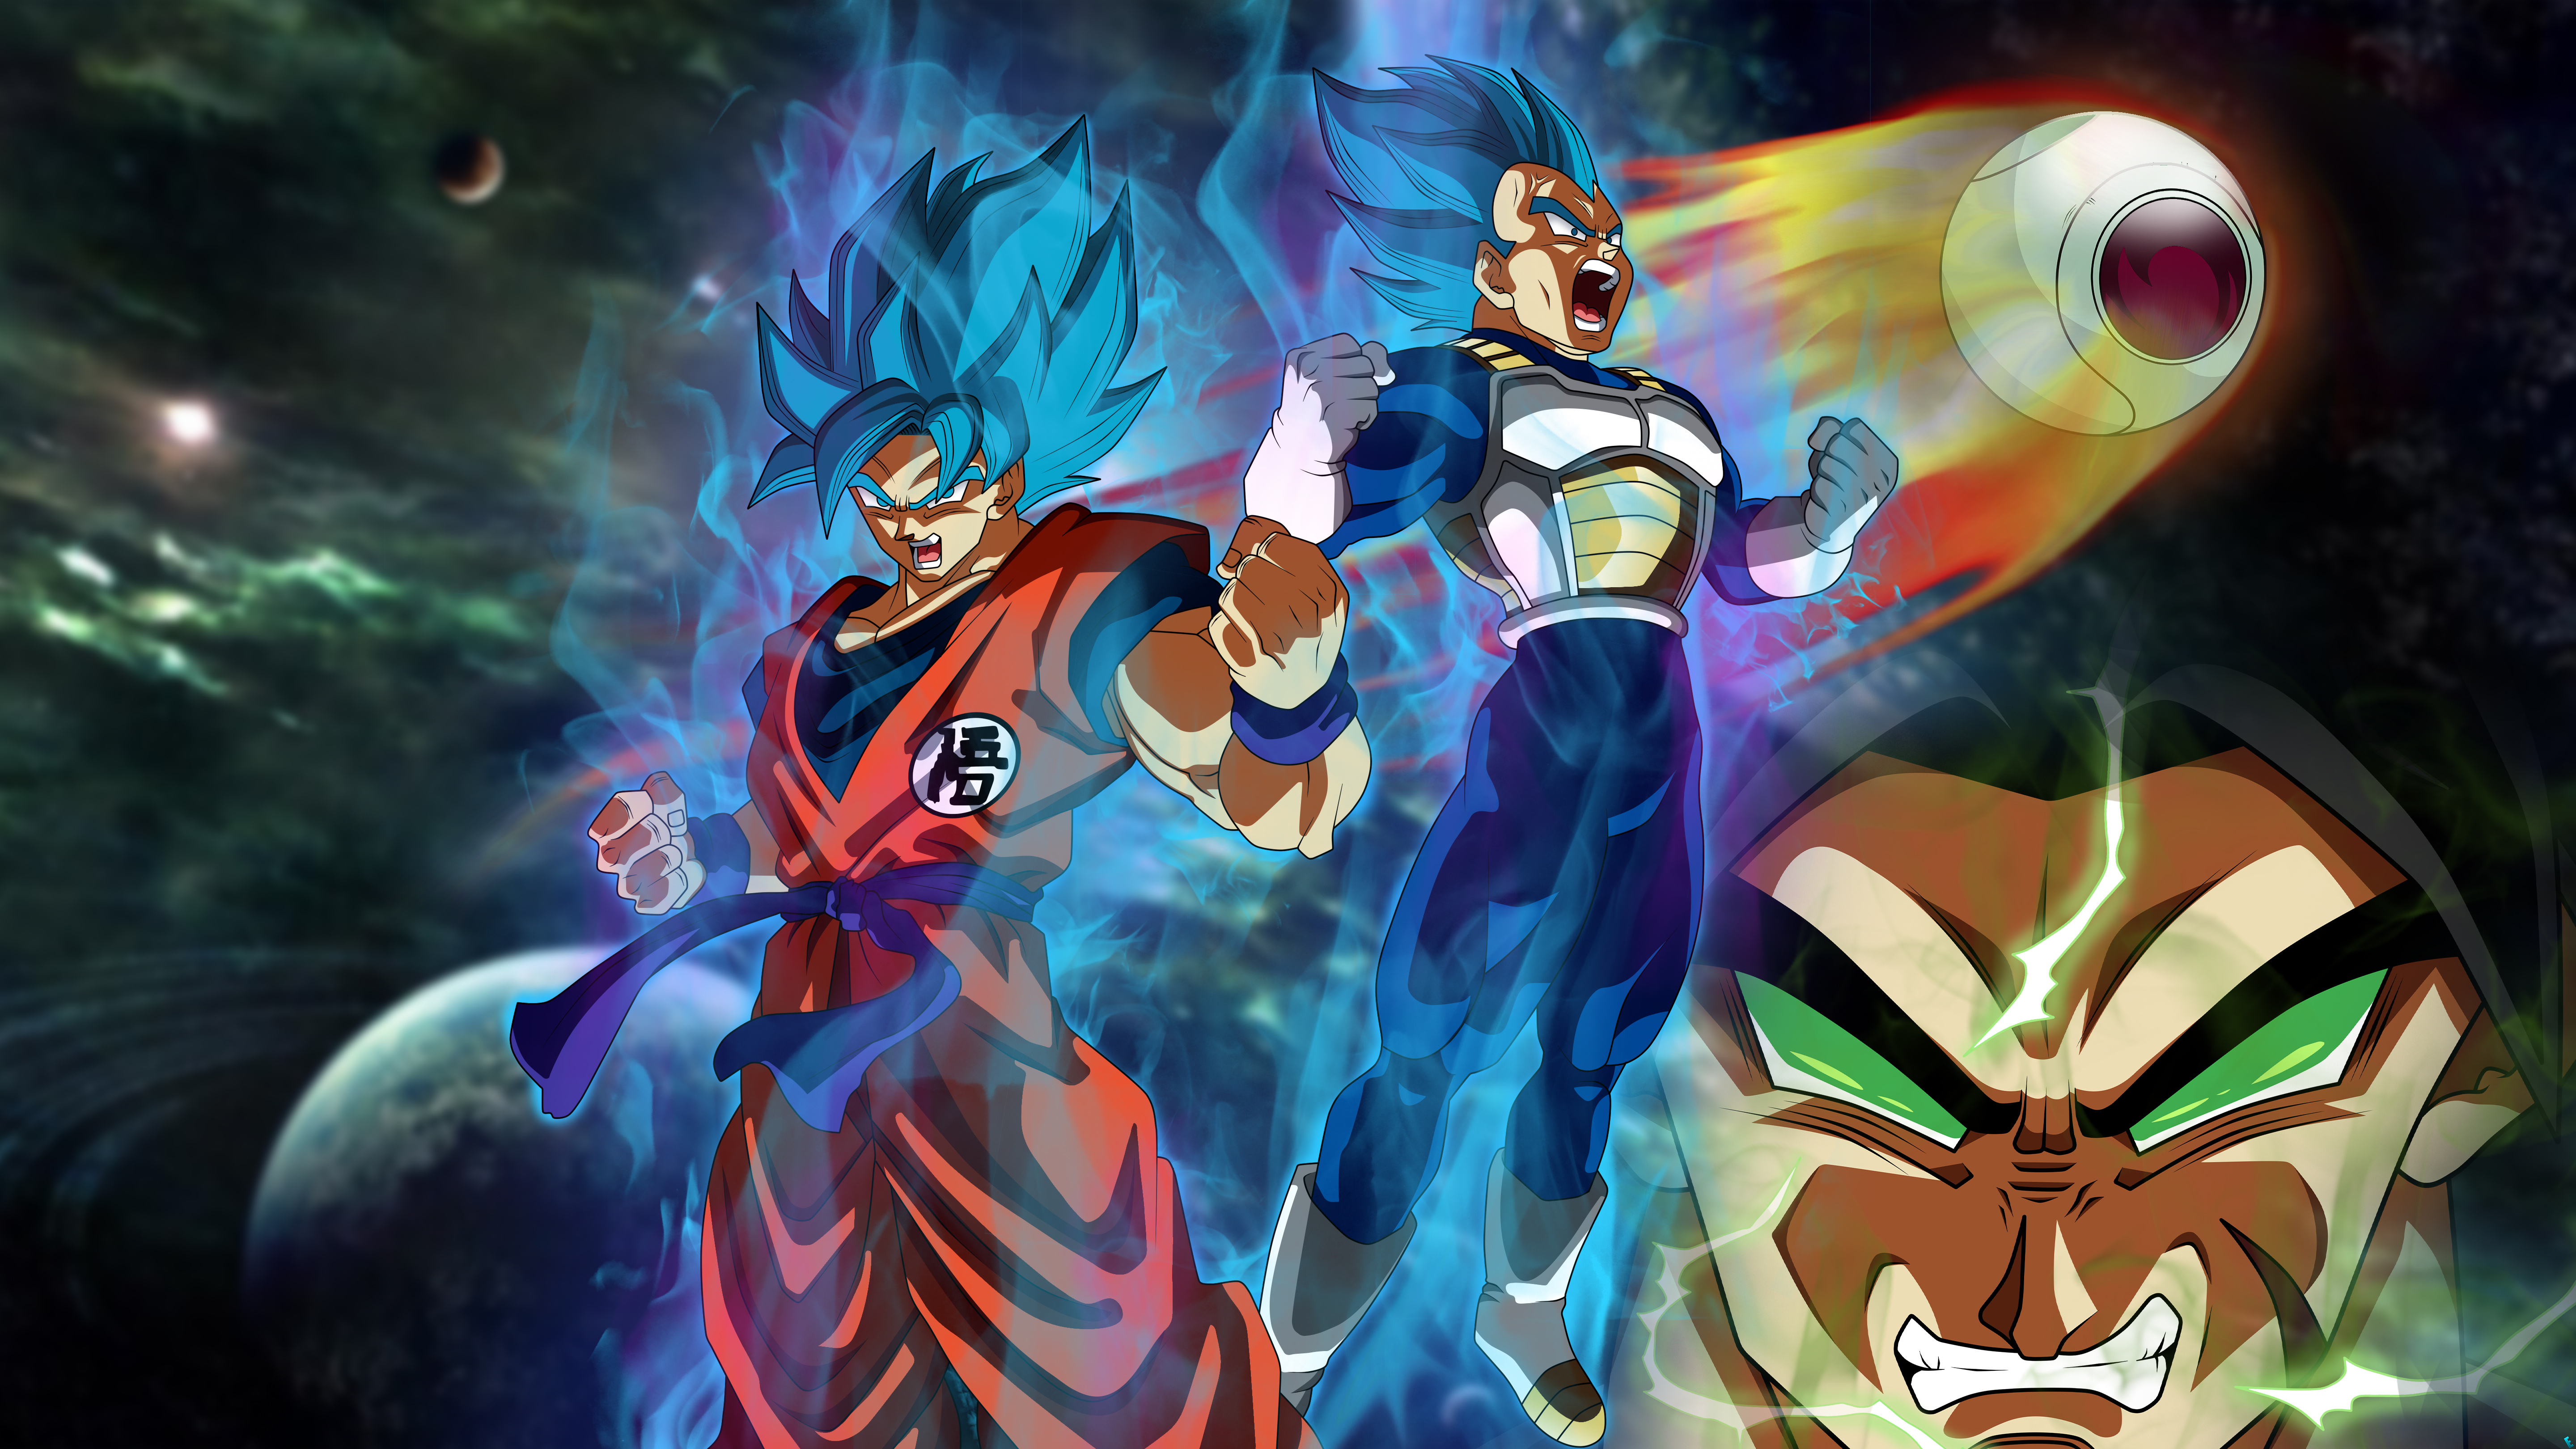 Goku Vegeta Dragon Ball Super 5k Hd Anime 4k Wallpapers